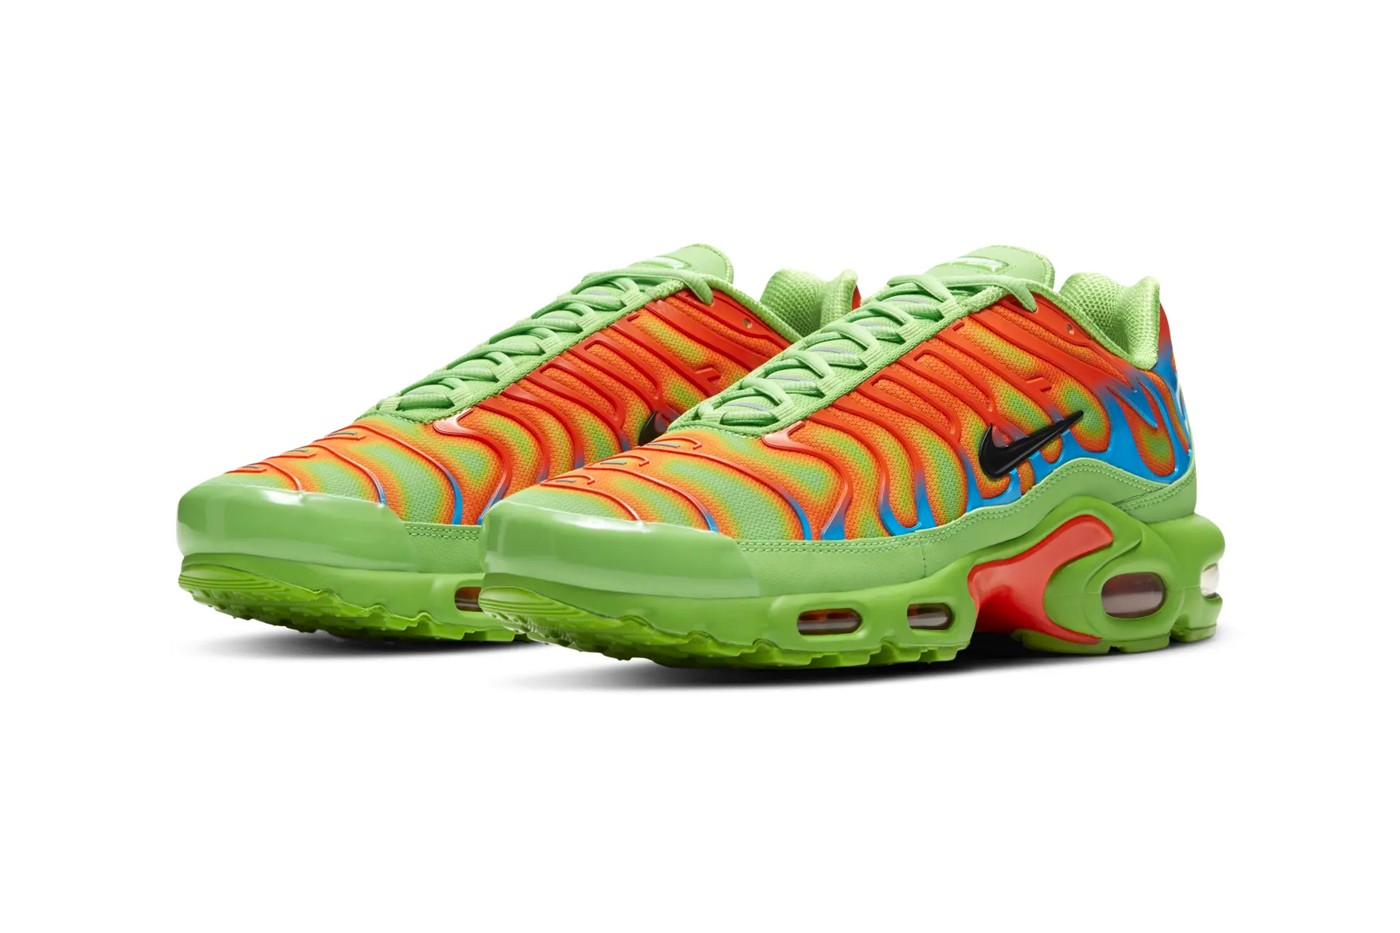 Supreme-Nike-Air-Max-Plus-Mean-Green-Full-View